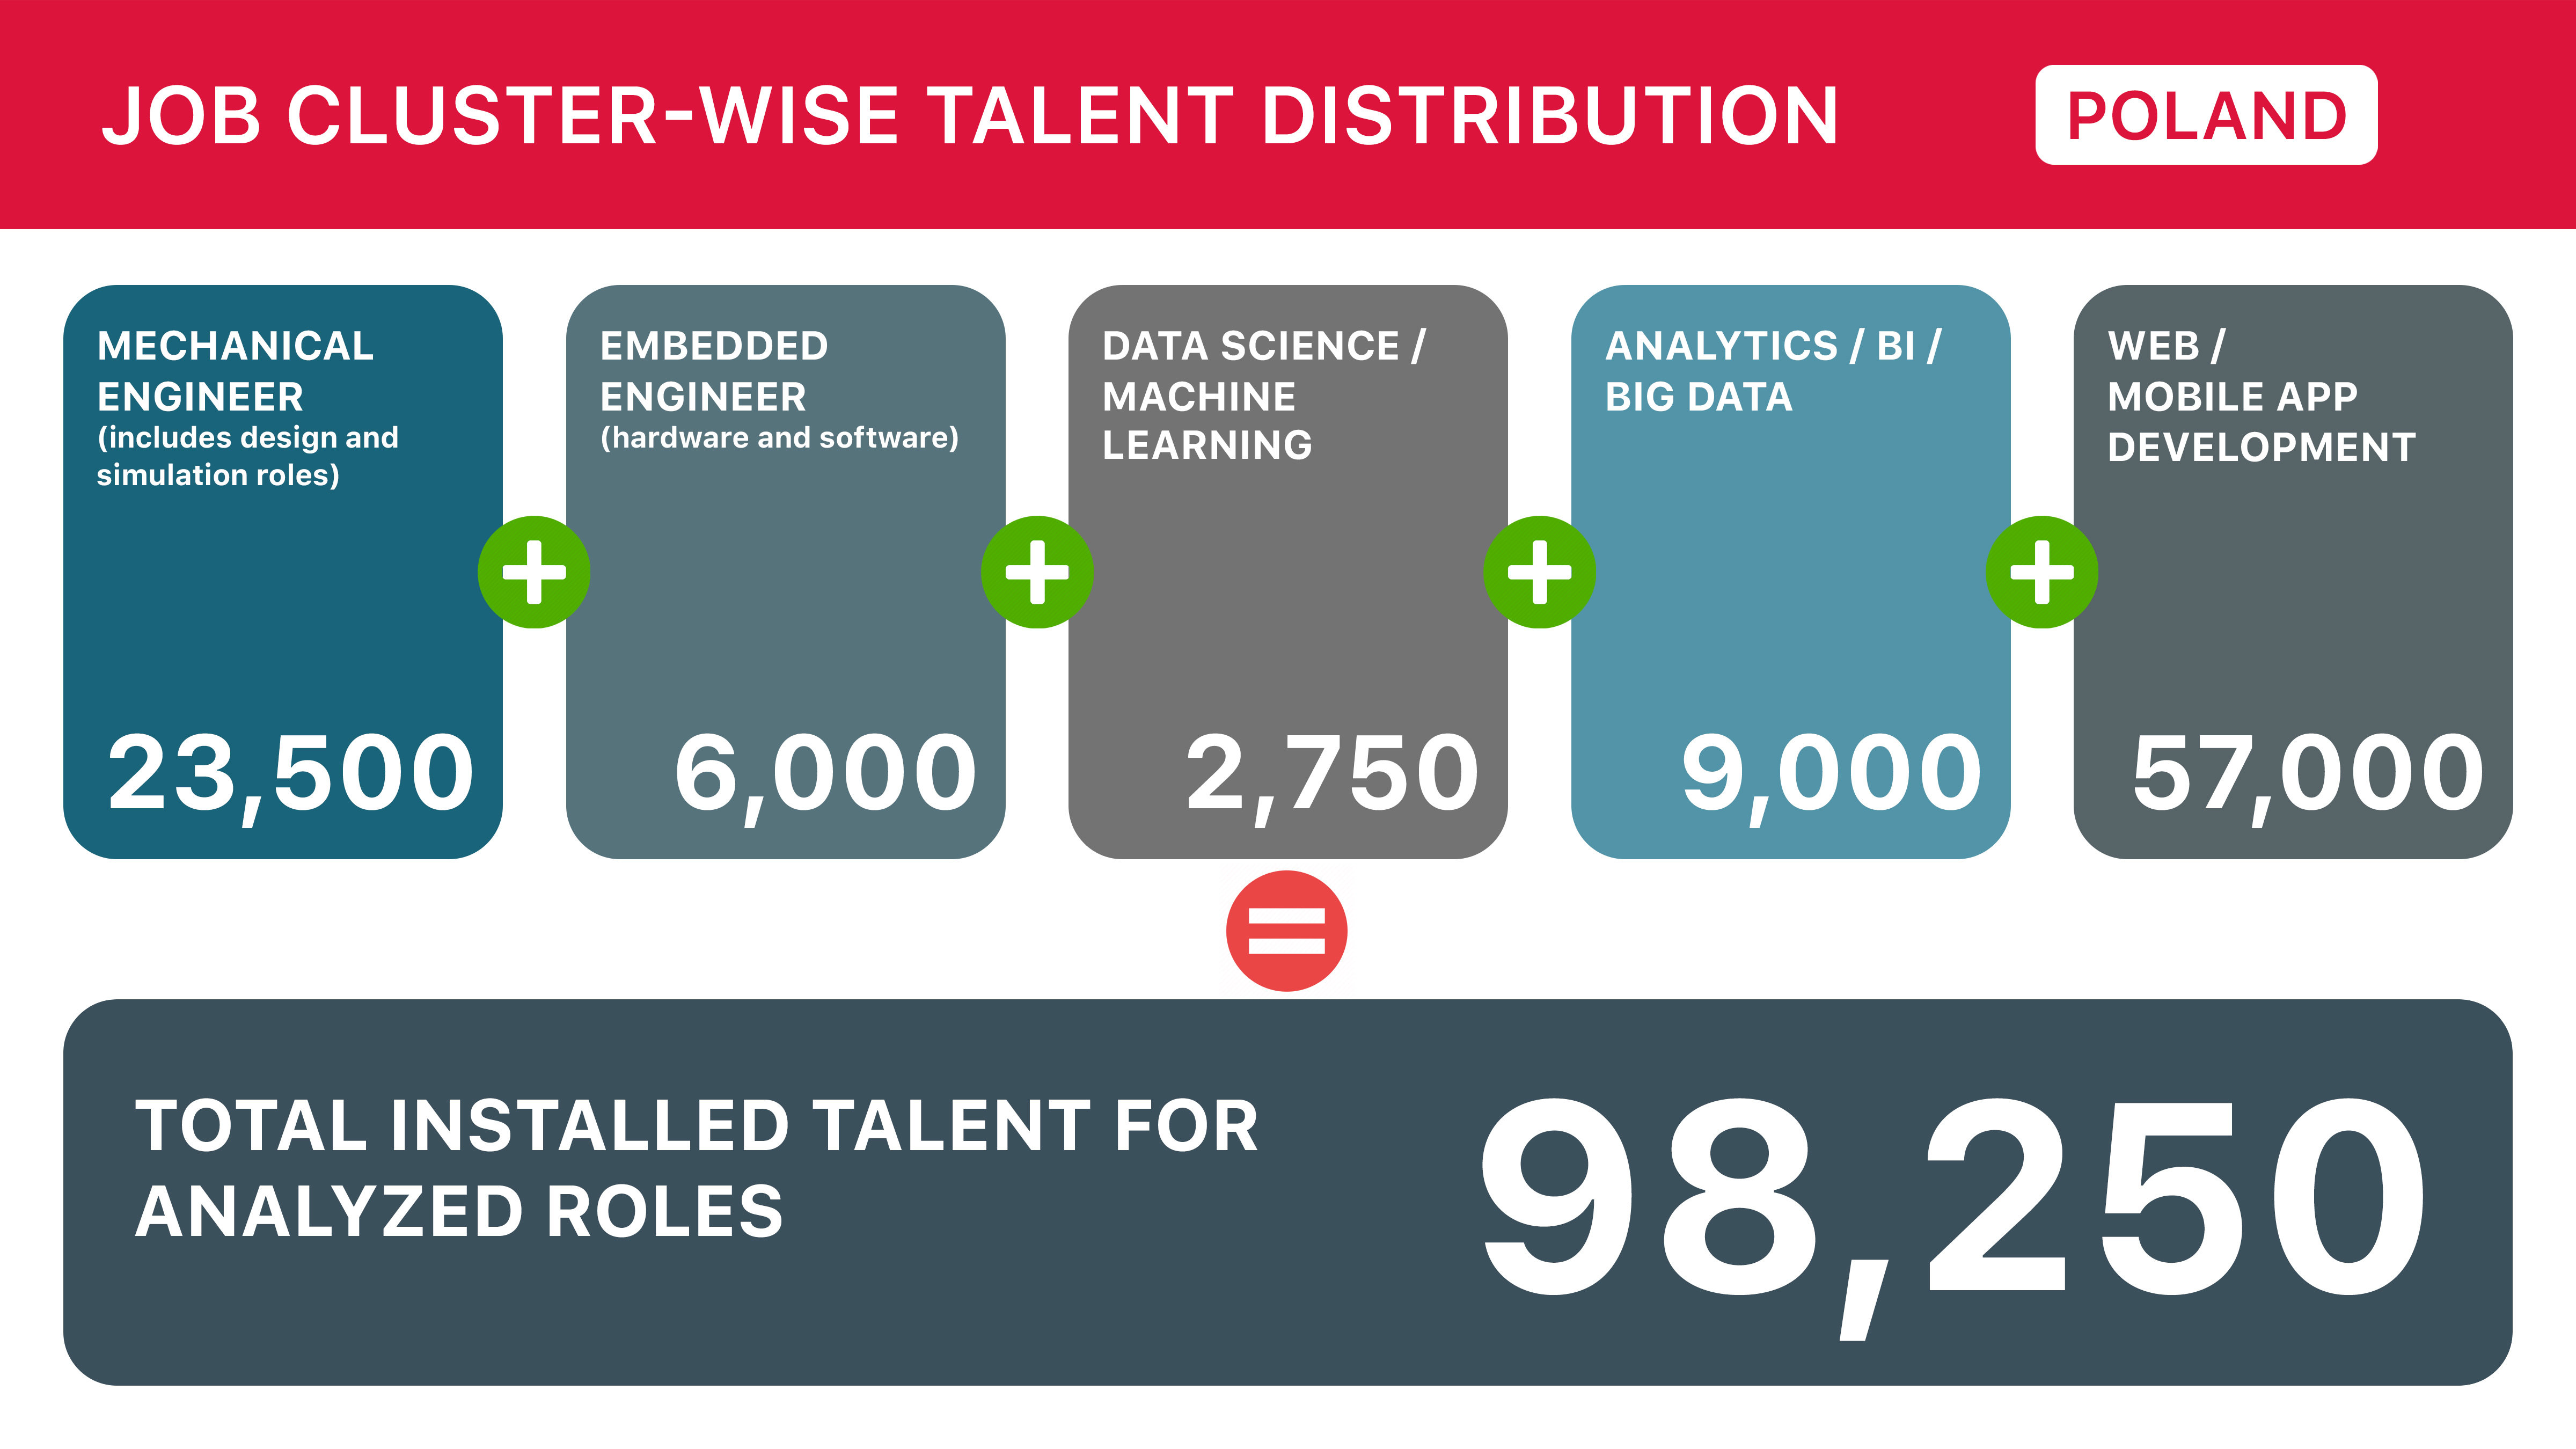 Poland Cluster-wise Talent Distribution